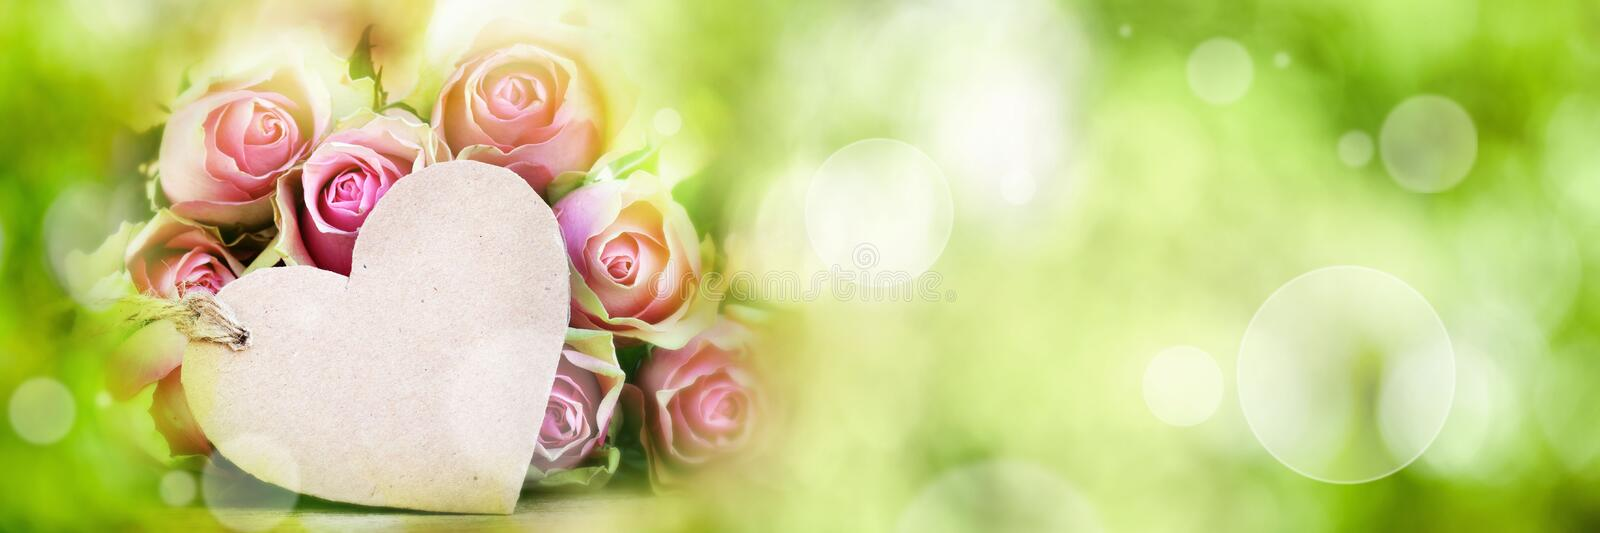 Roses with greeting card on spring background stock photography